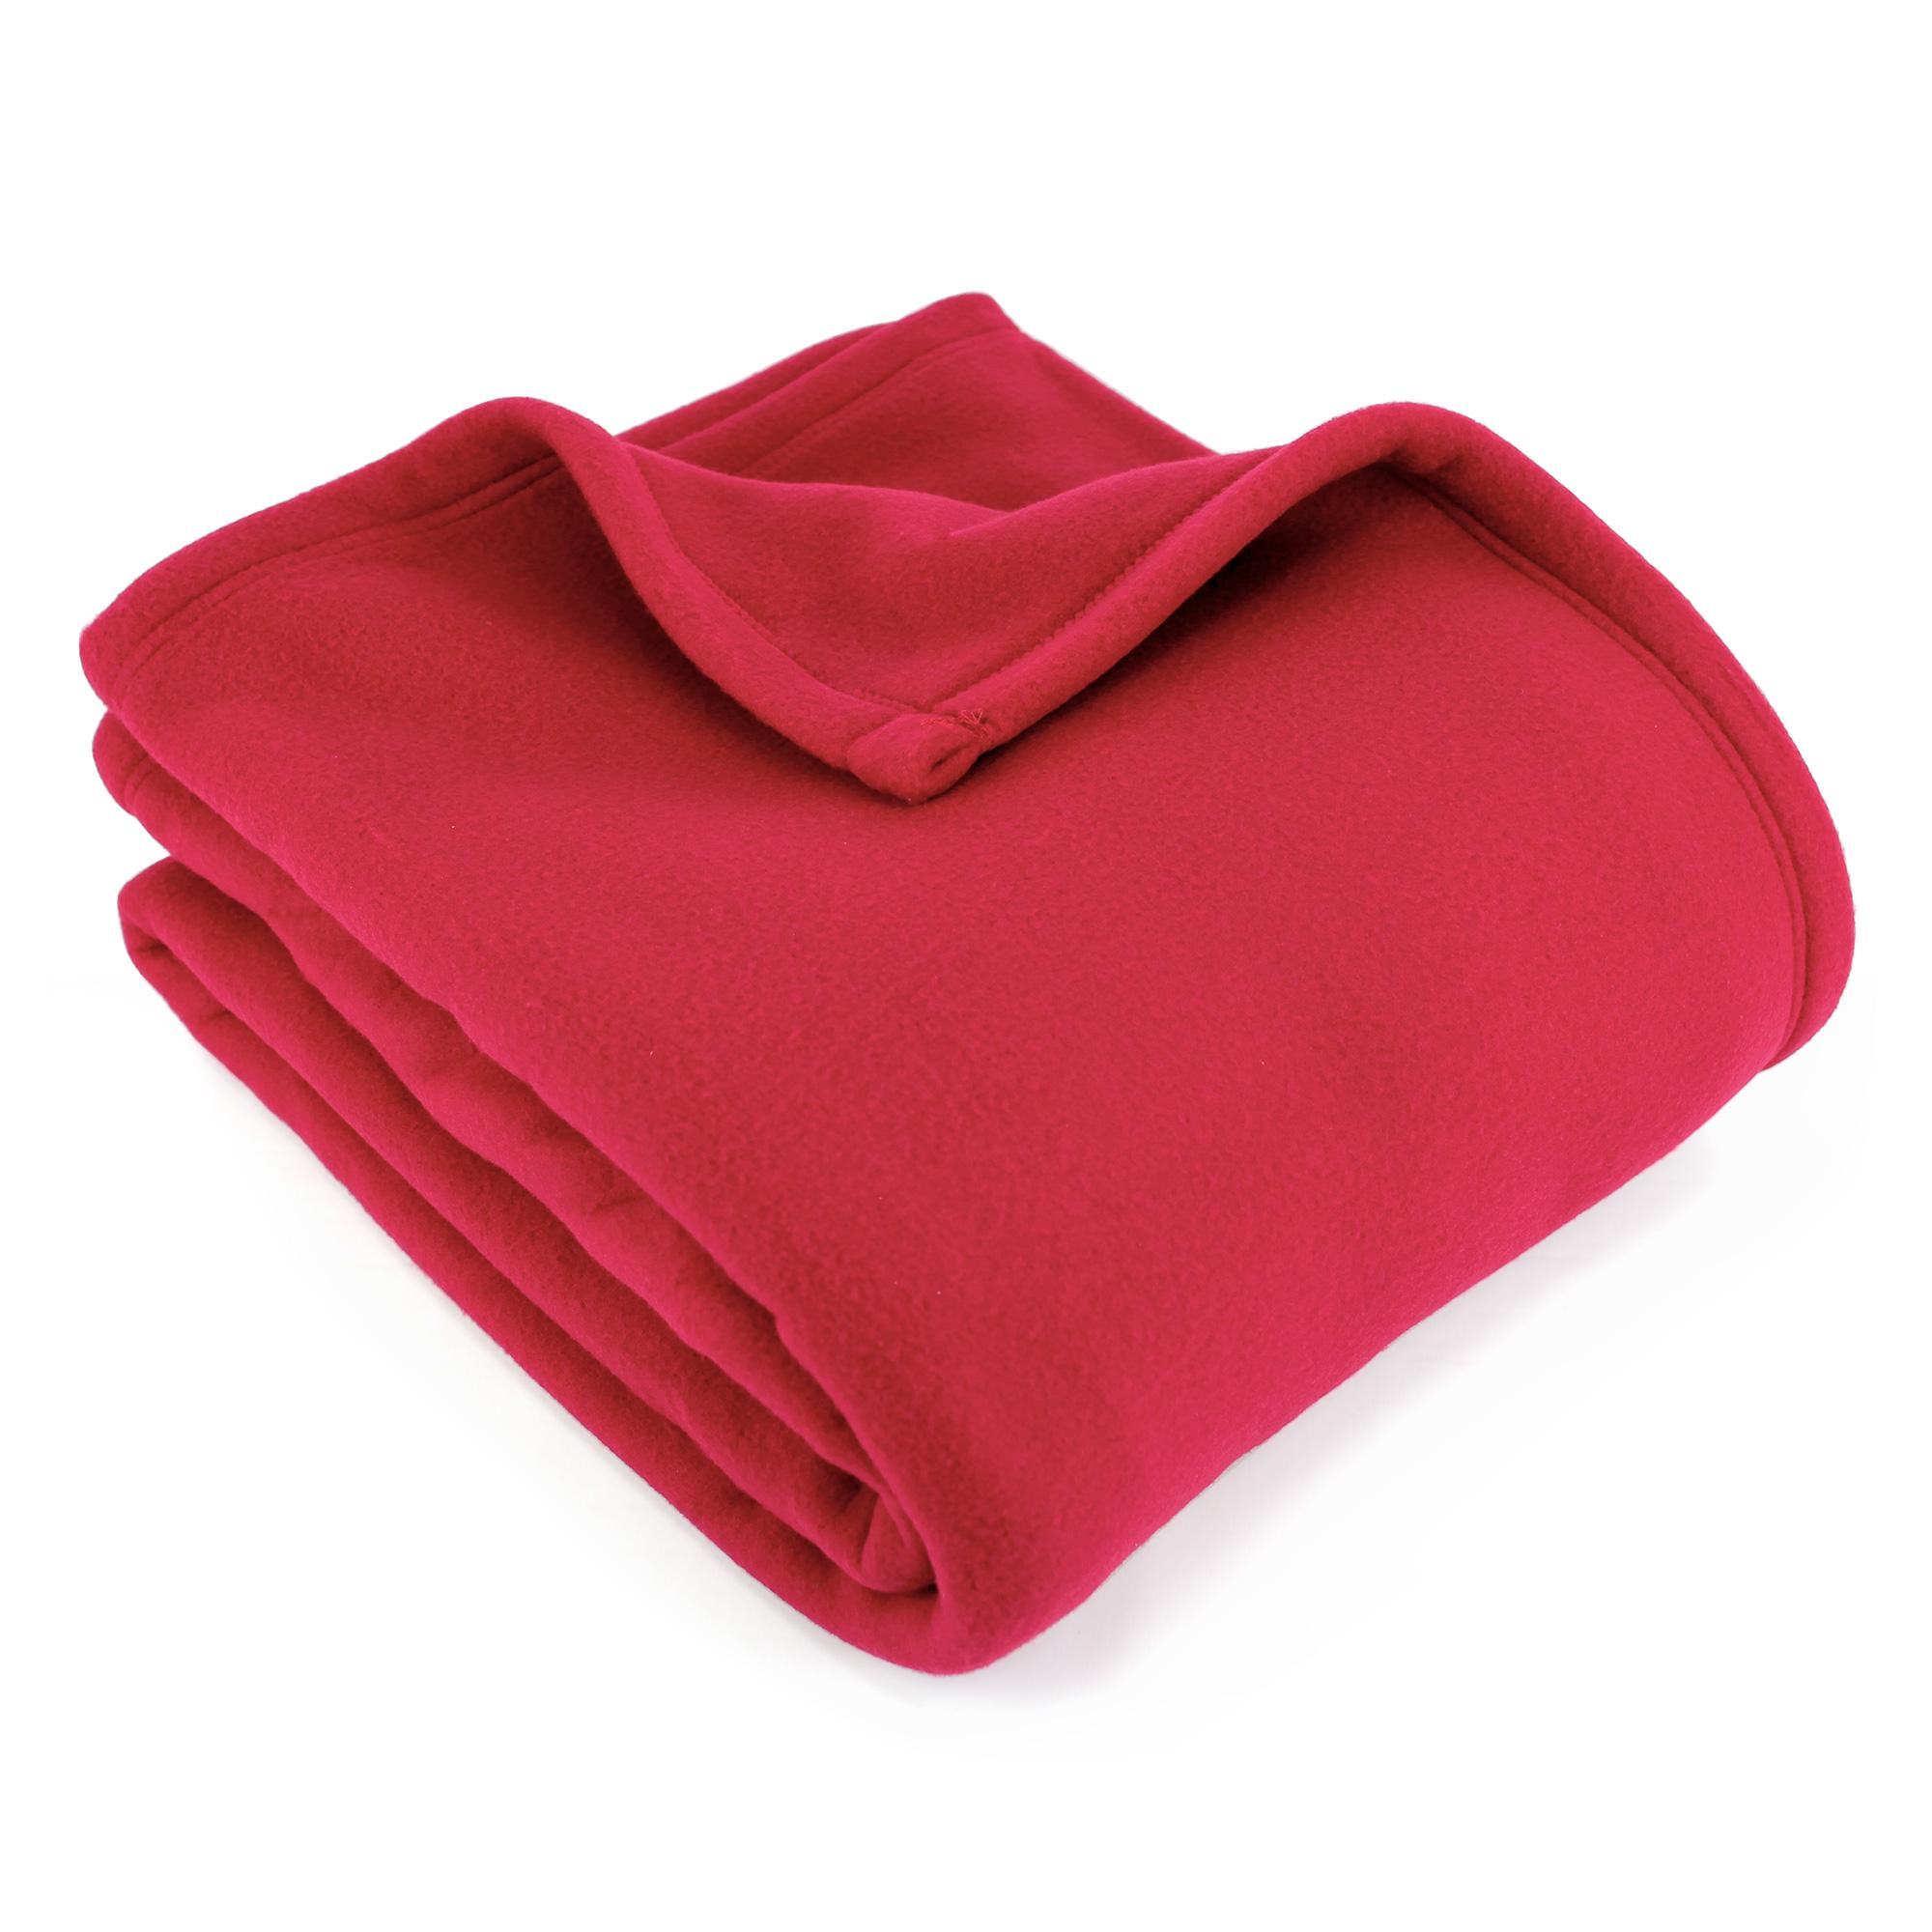 Couverture-polaire-220x240-cm-100-Polyester-350g-m2-TEDDY-Rouge-Framboise